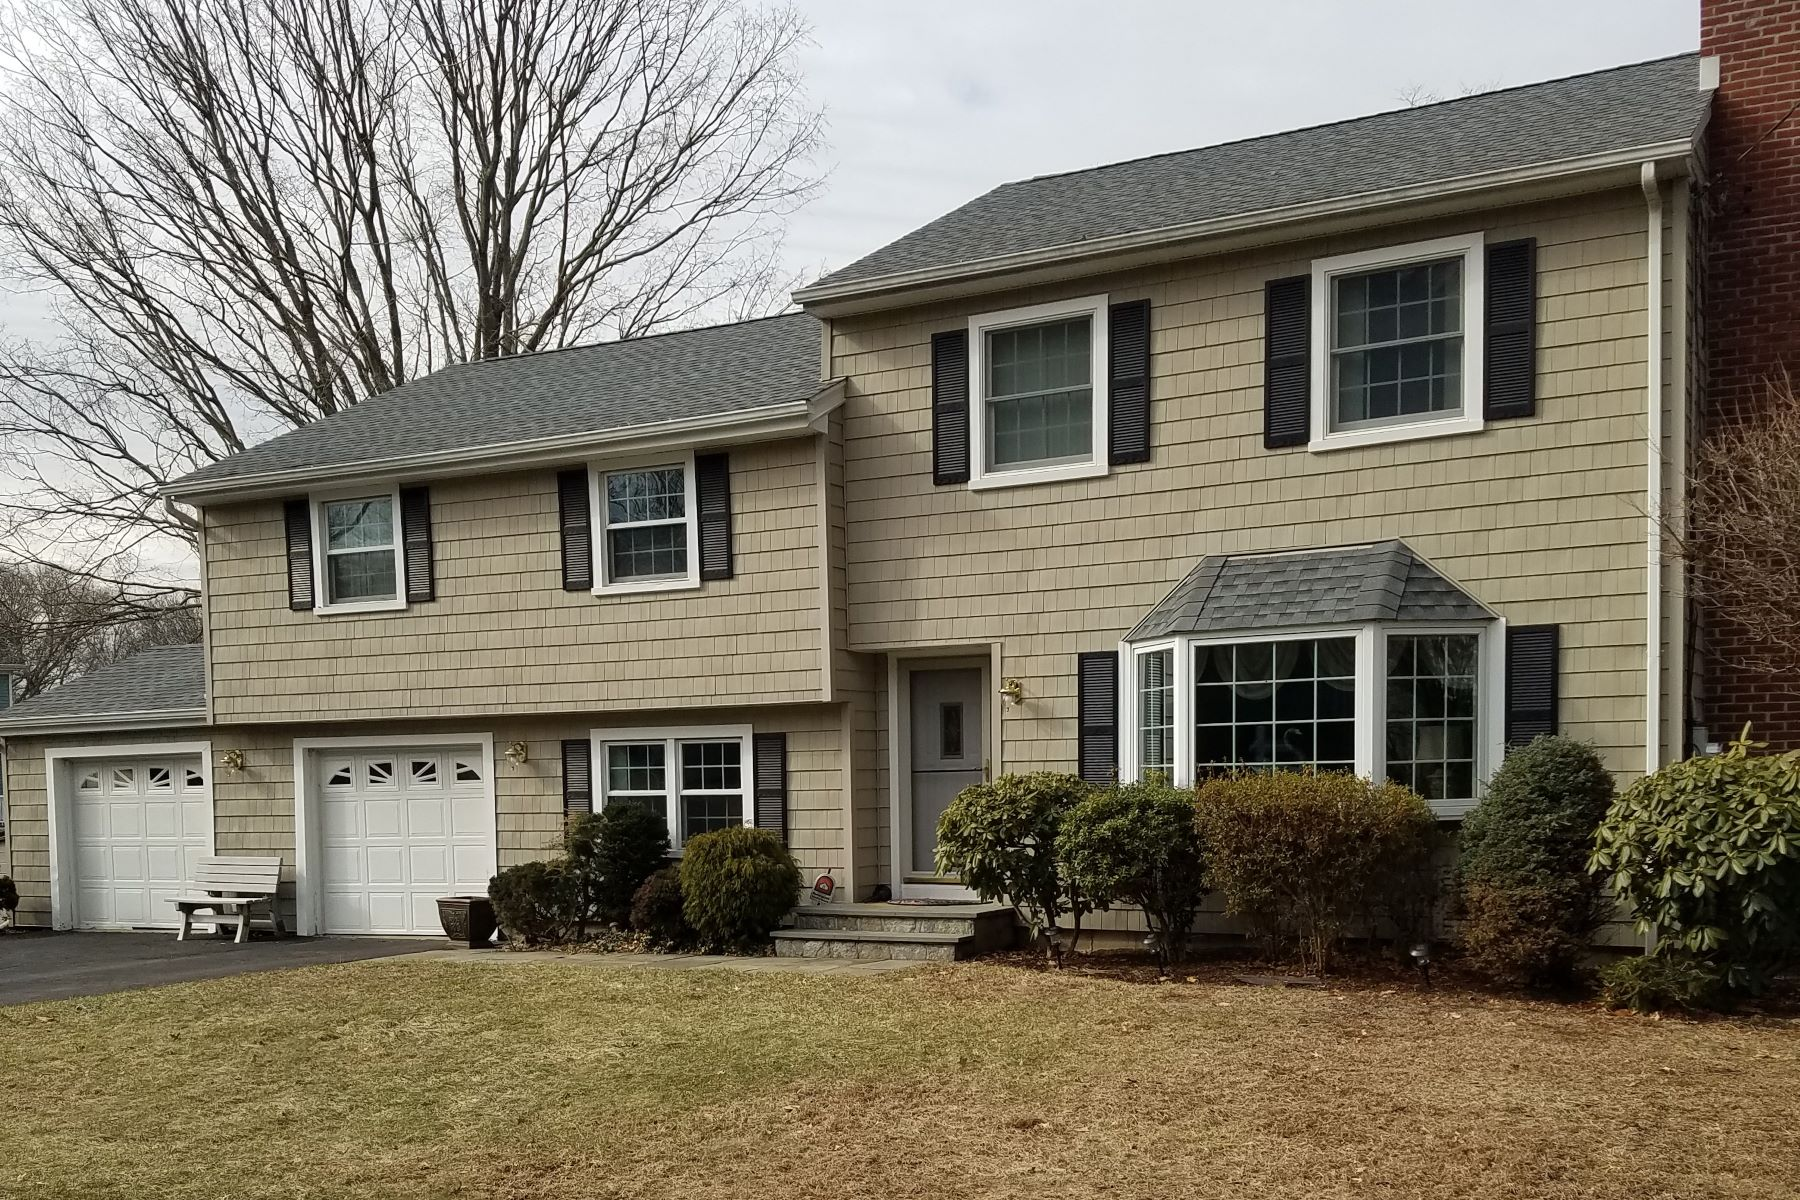 Single Family Home for Sale at University Cul de Sac 170 Shady Hill Road, Fairfield, Connecticut, 06824 United States